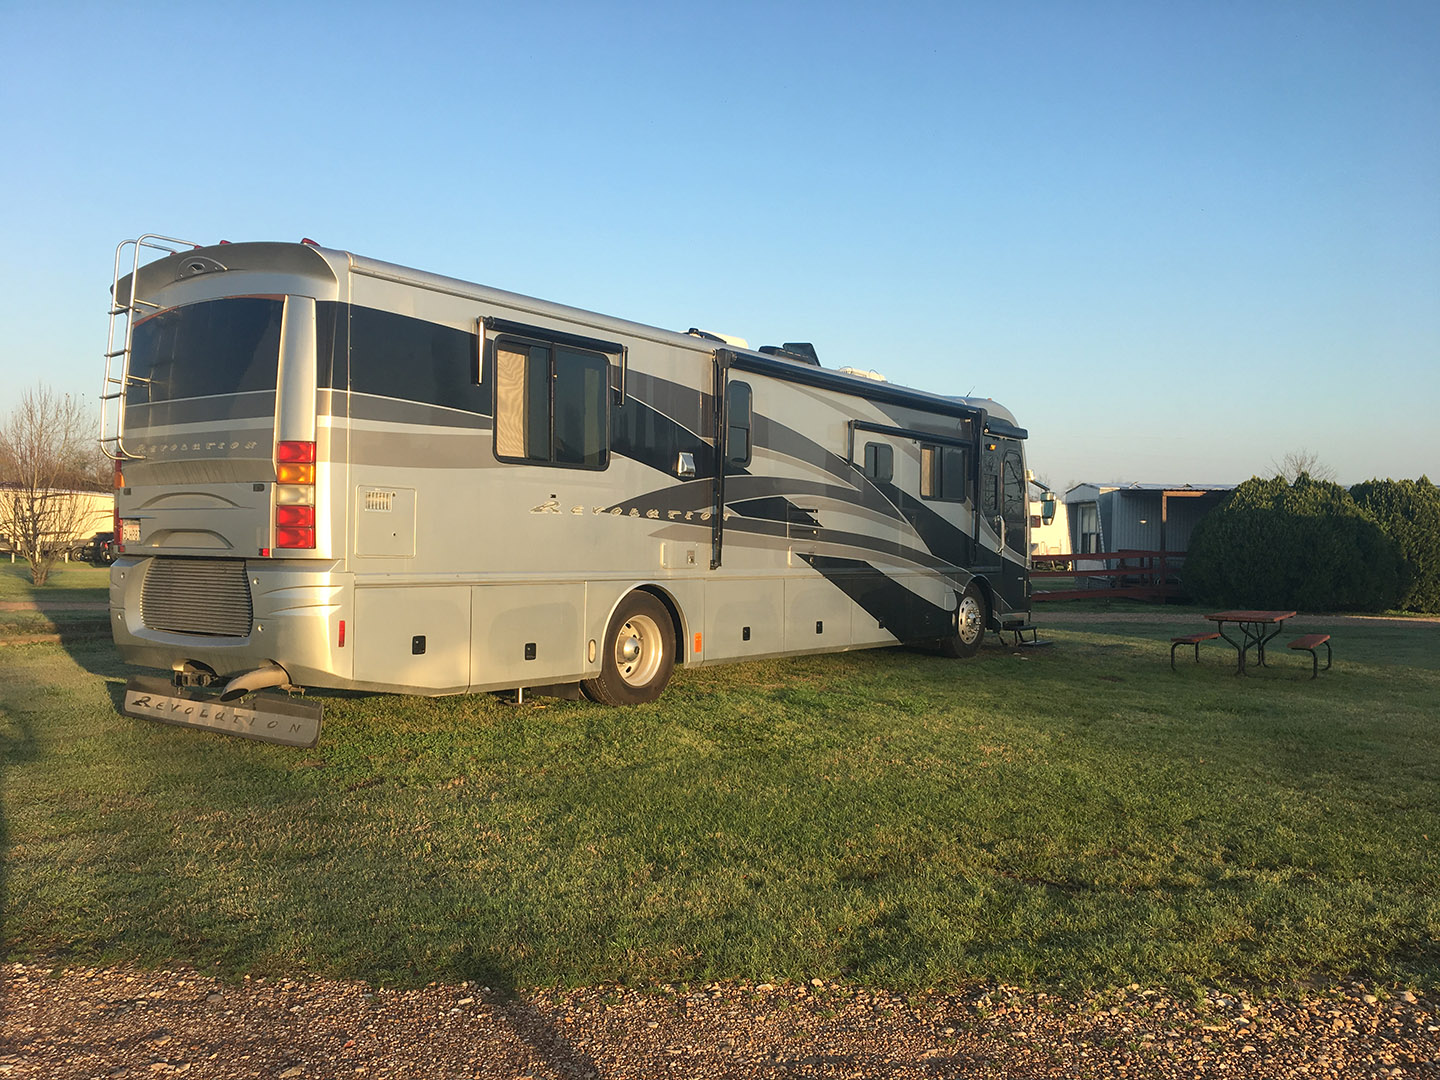 Our motorhome parked on the grass